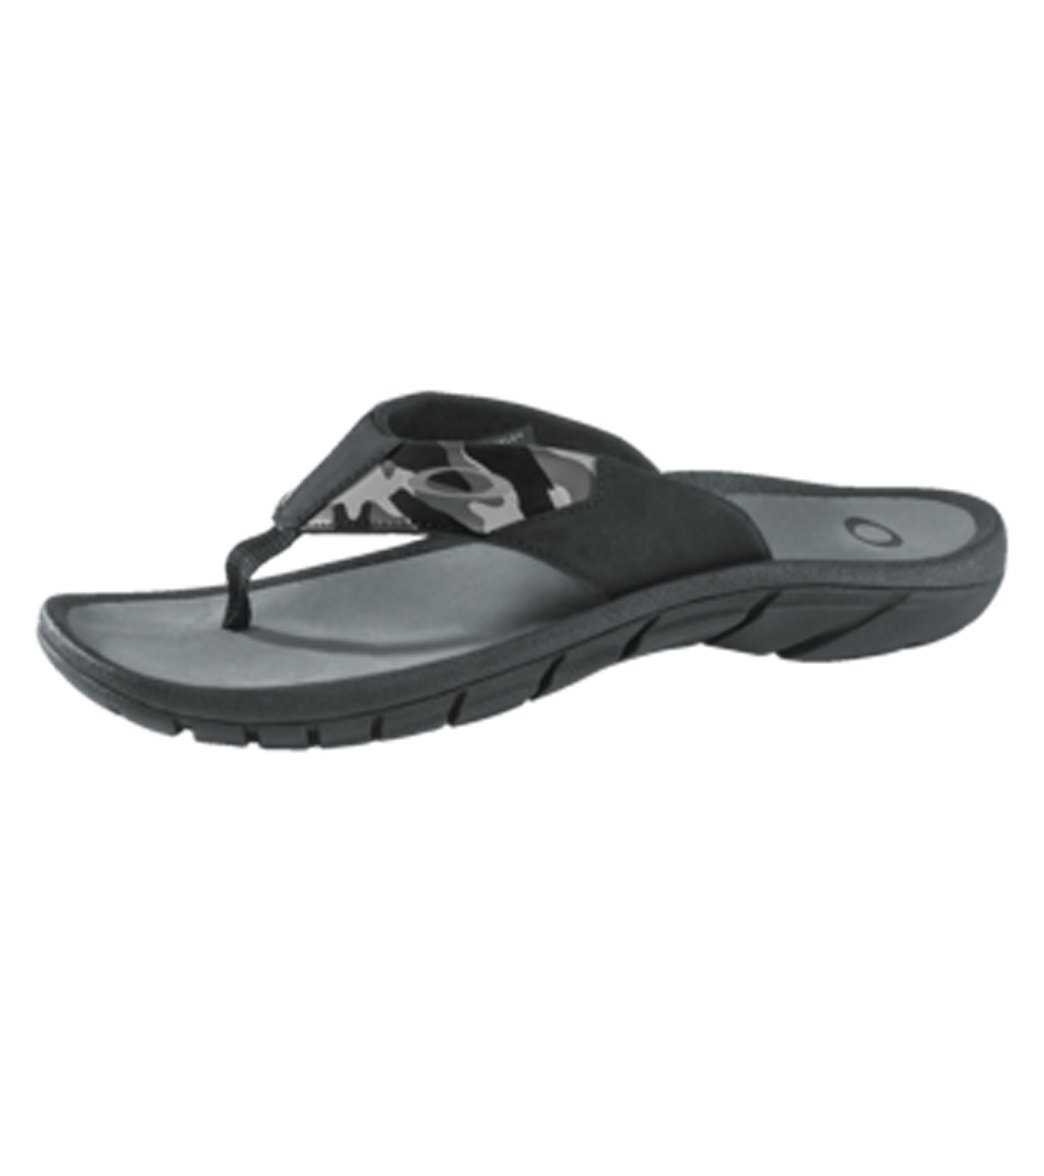 6438bd44dd Oakley Men s Supercoil 15 P2 Flip-Flop at SwimOutlet.com - Free Shipping